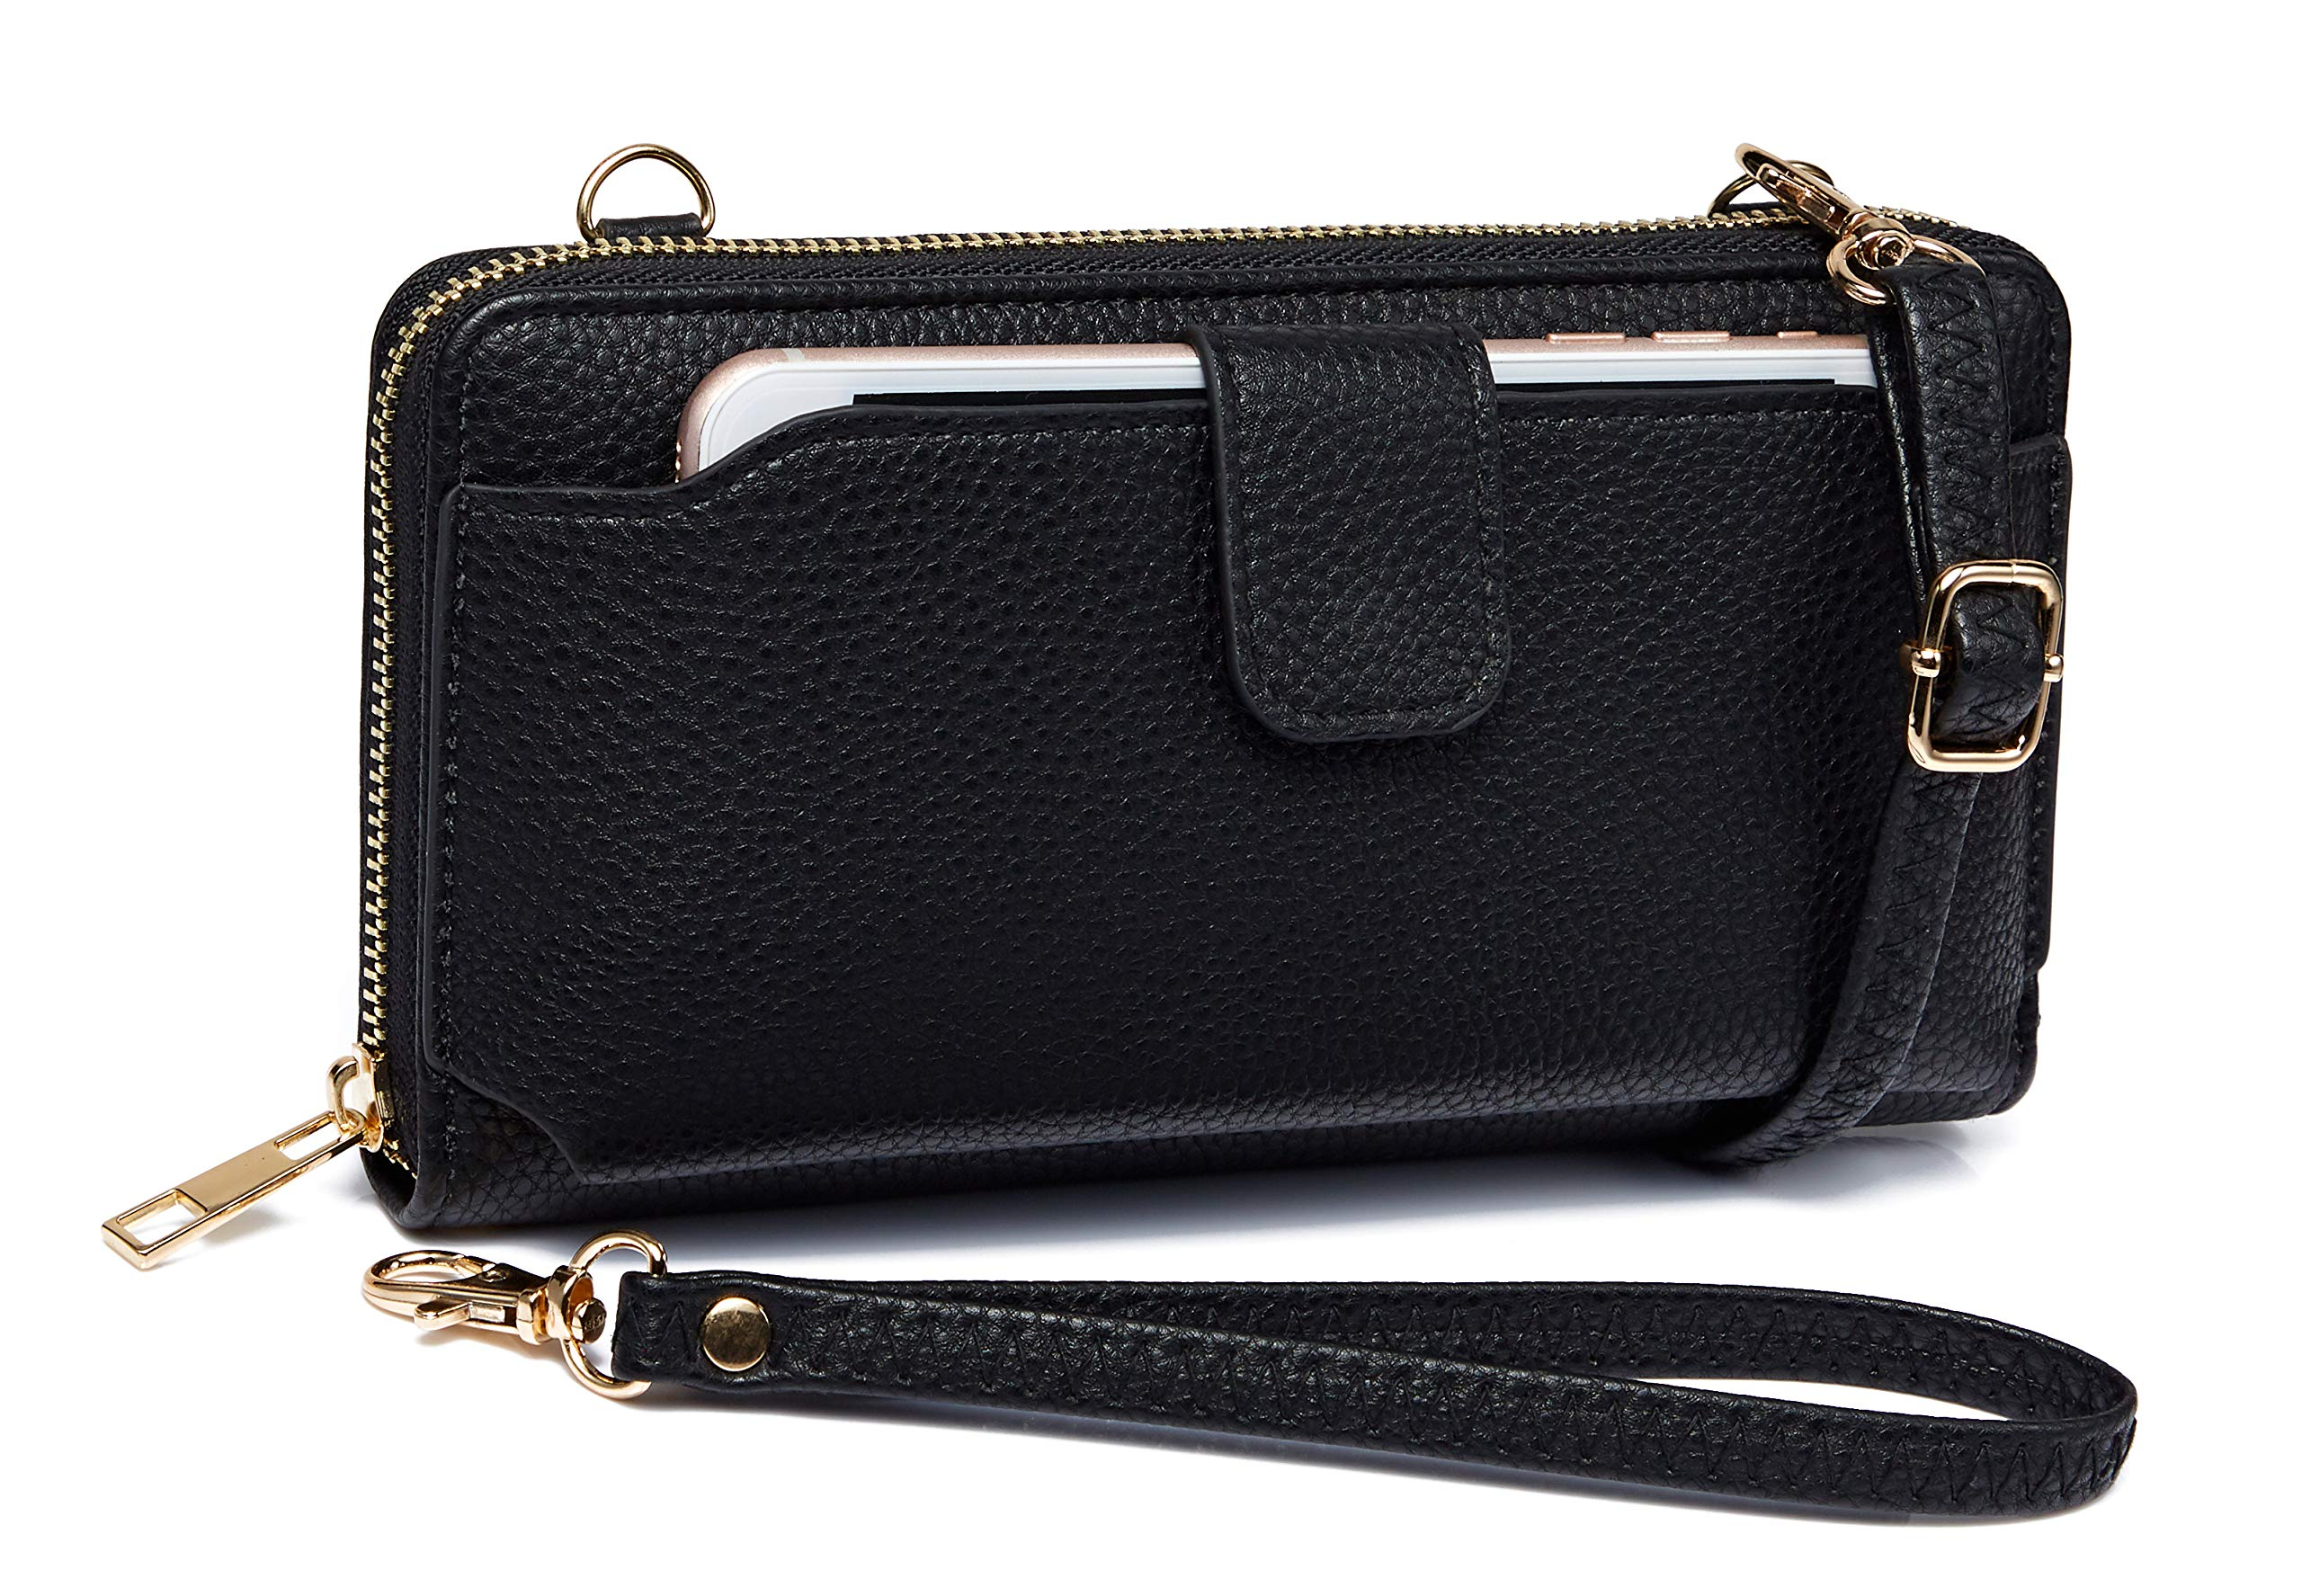 Heaye Wristlet Wallet with Cell Phone Holder Crossbody Bags Purse for Women Black by Heaye